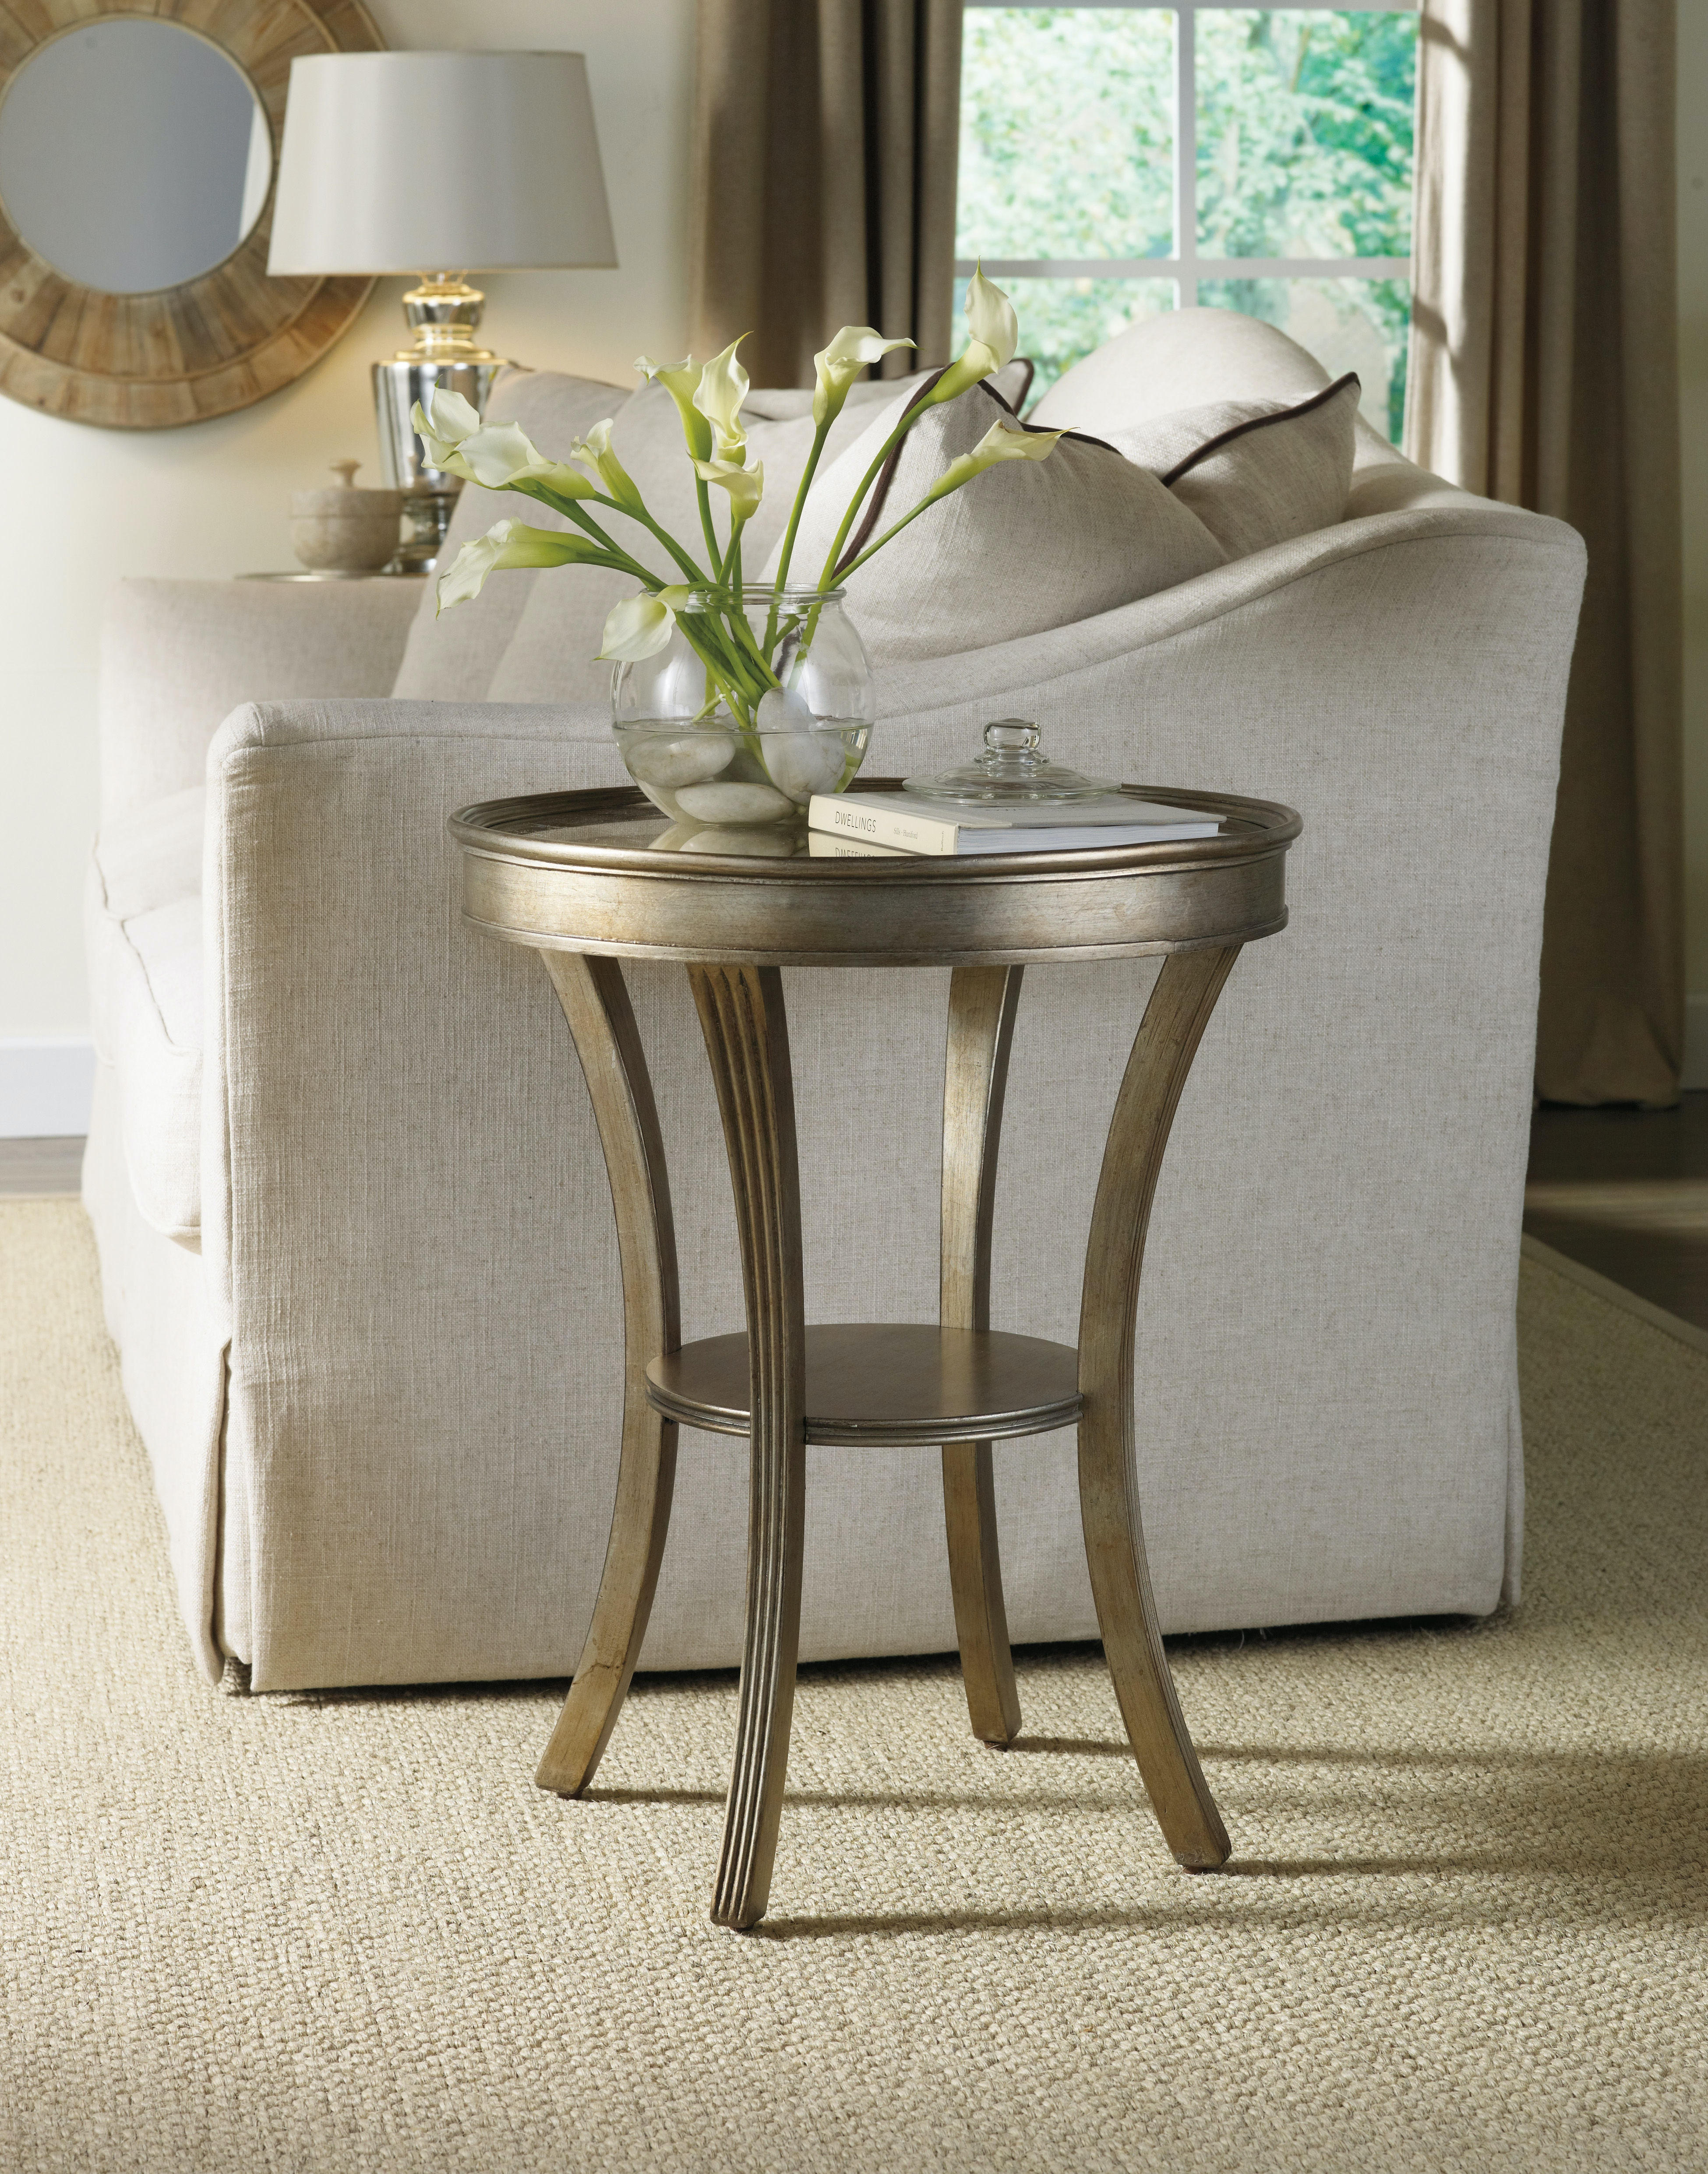 Hooker Furniture Living Room Sanctuary Round Mirrored